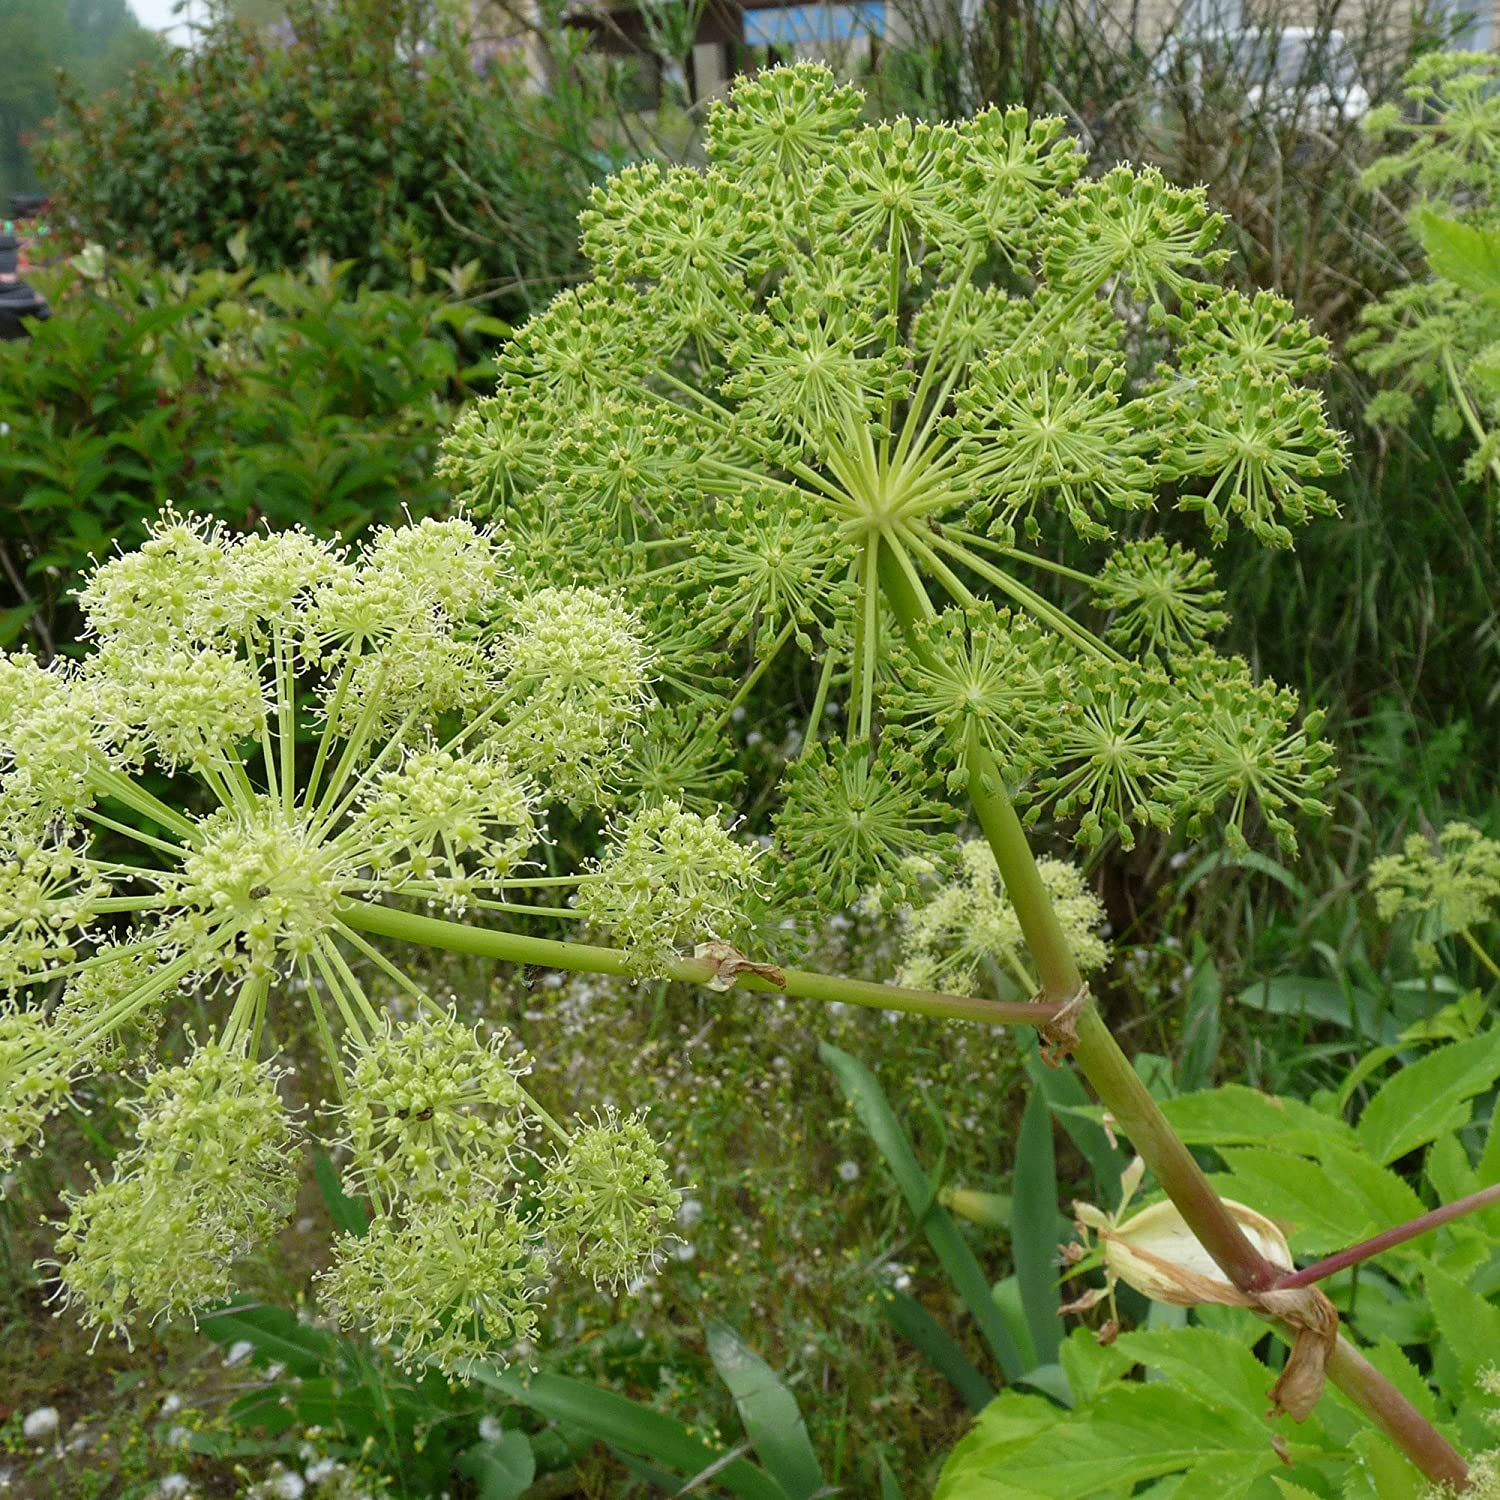 Angelica Seeds (Angelica archangelica) 30+ Rare Aromatic Medicinal Herb Seeds in FROZEN SEED CAPSULES for The Gardener & Rare Seeds Collector - Plant Seeds Now or Save Seeds for Years